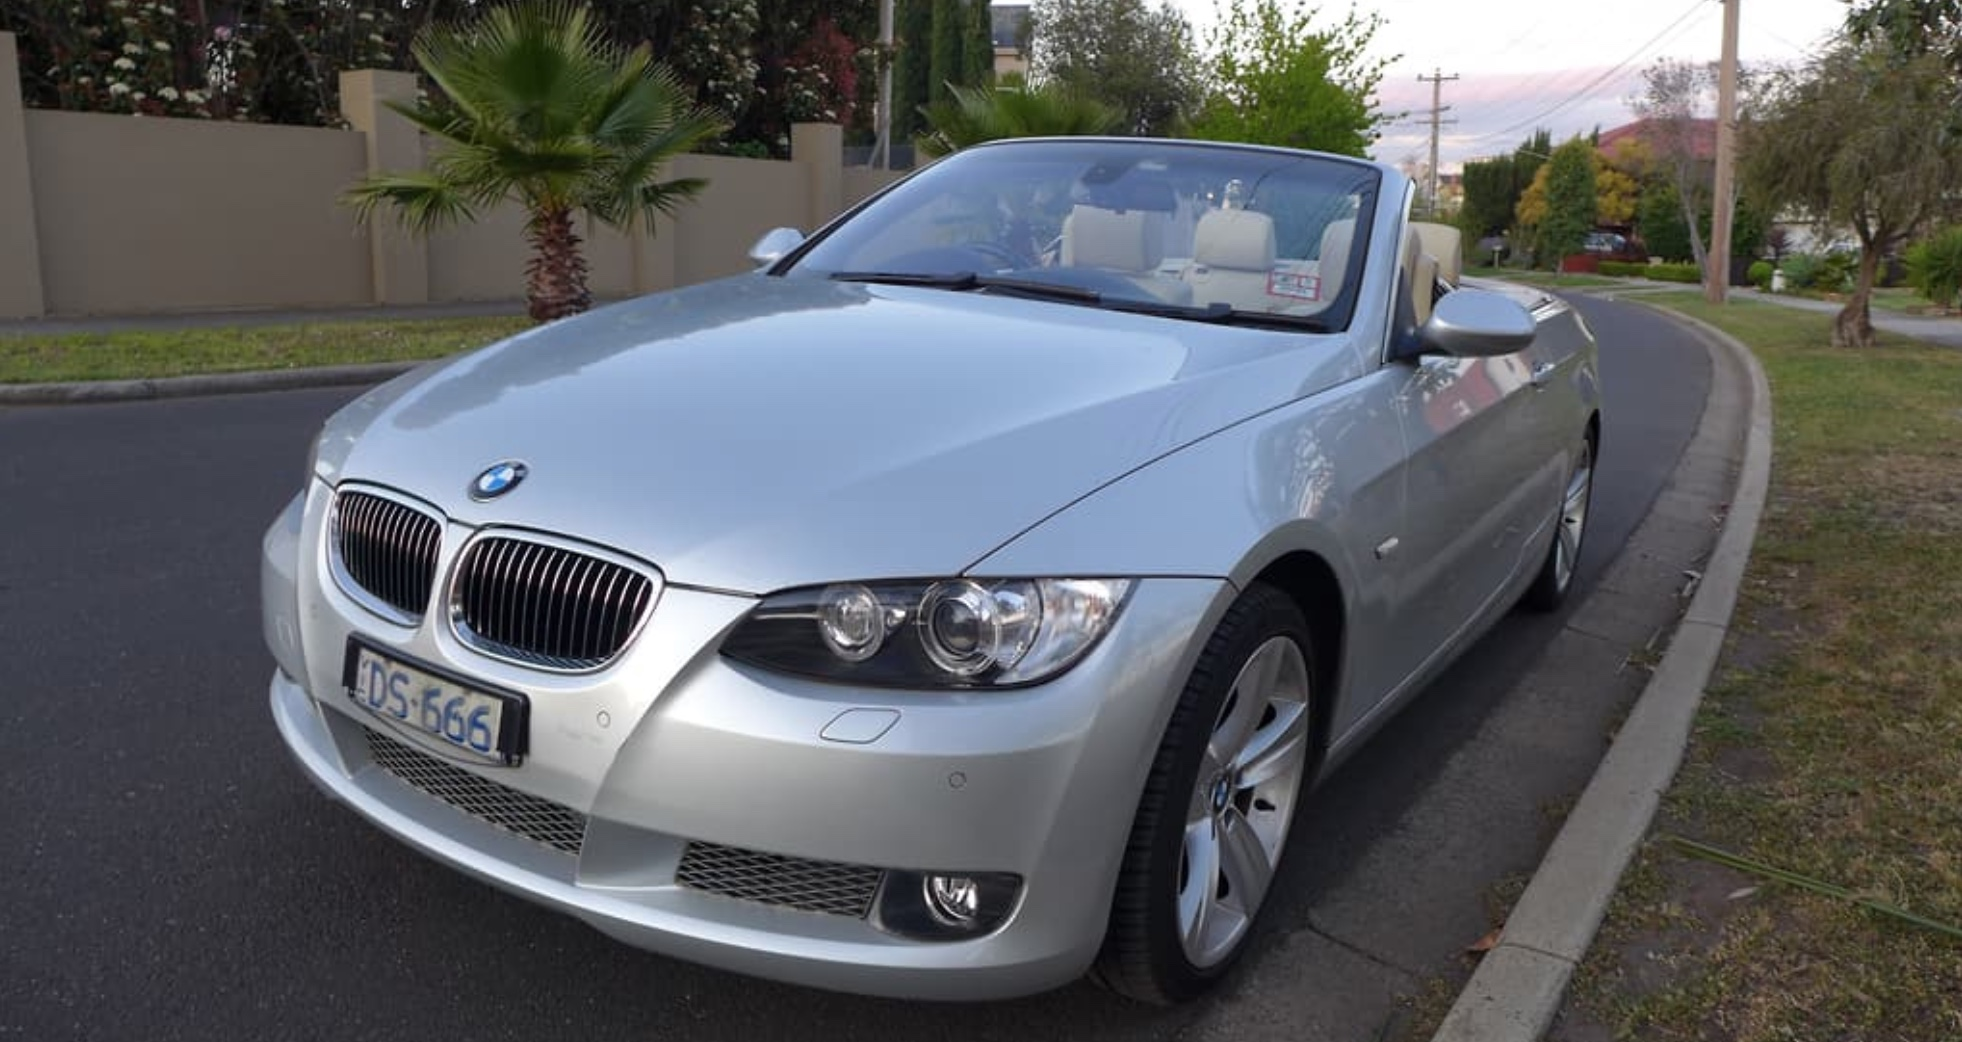 Picture of Grace's 2007 BMW 335i convertible